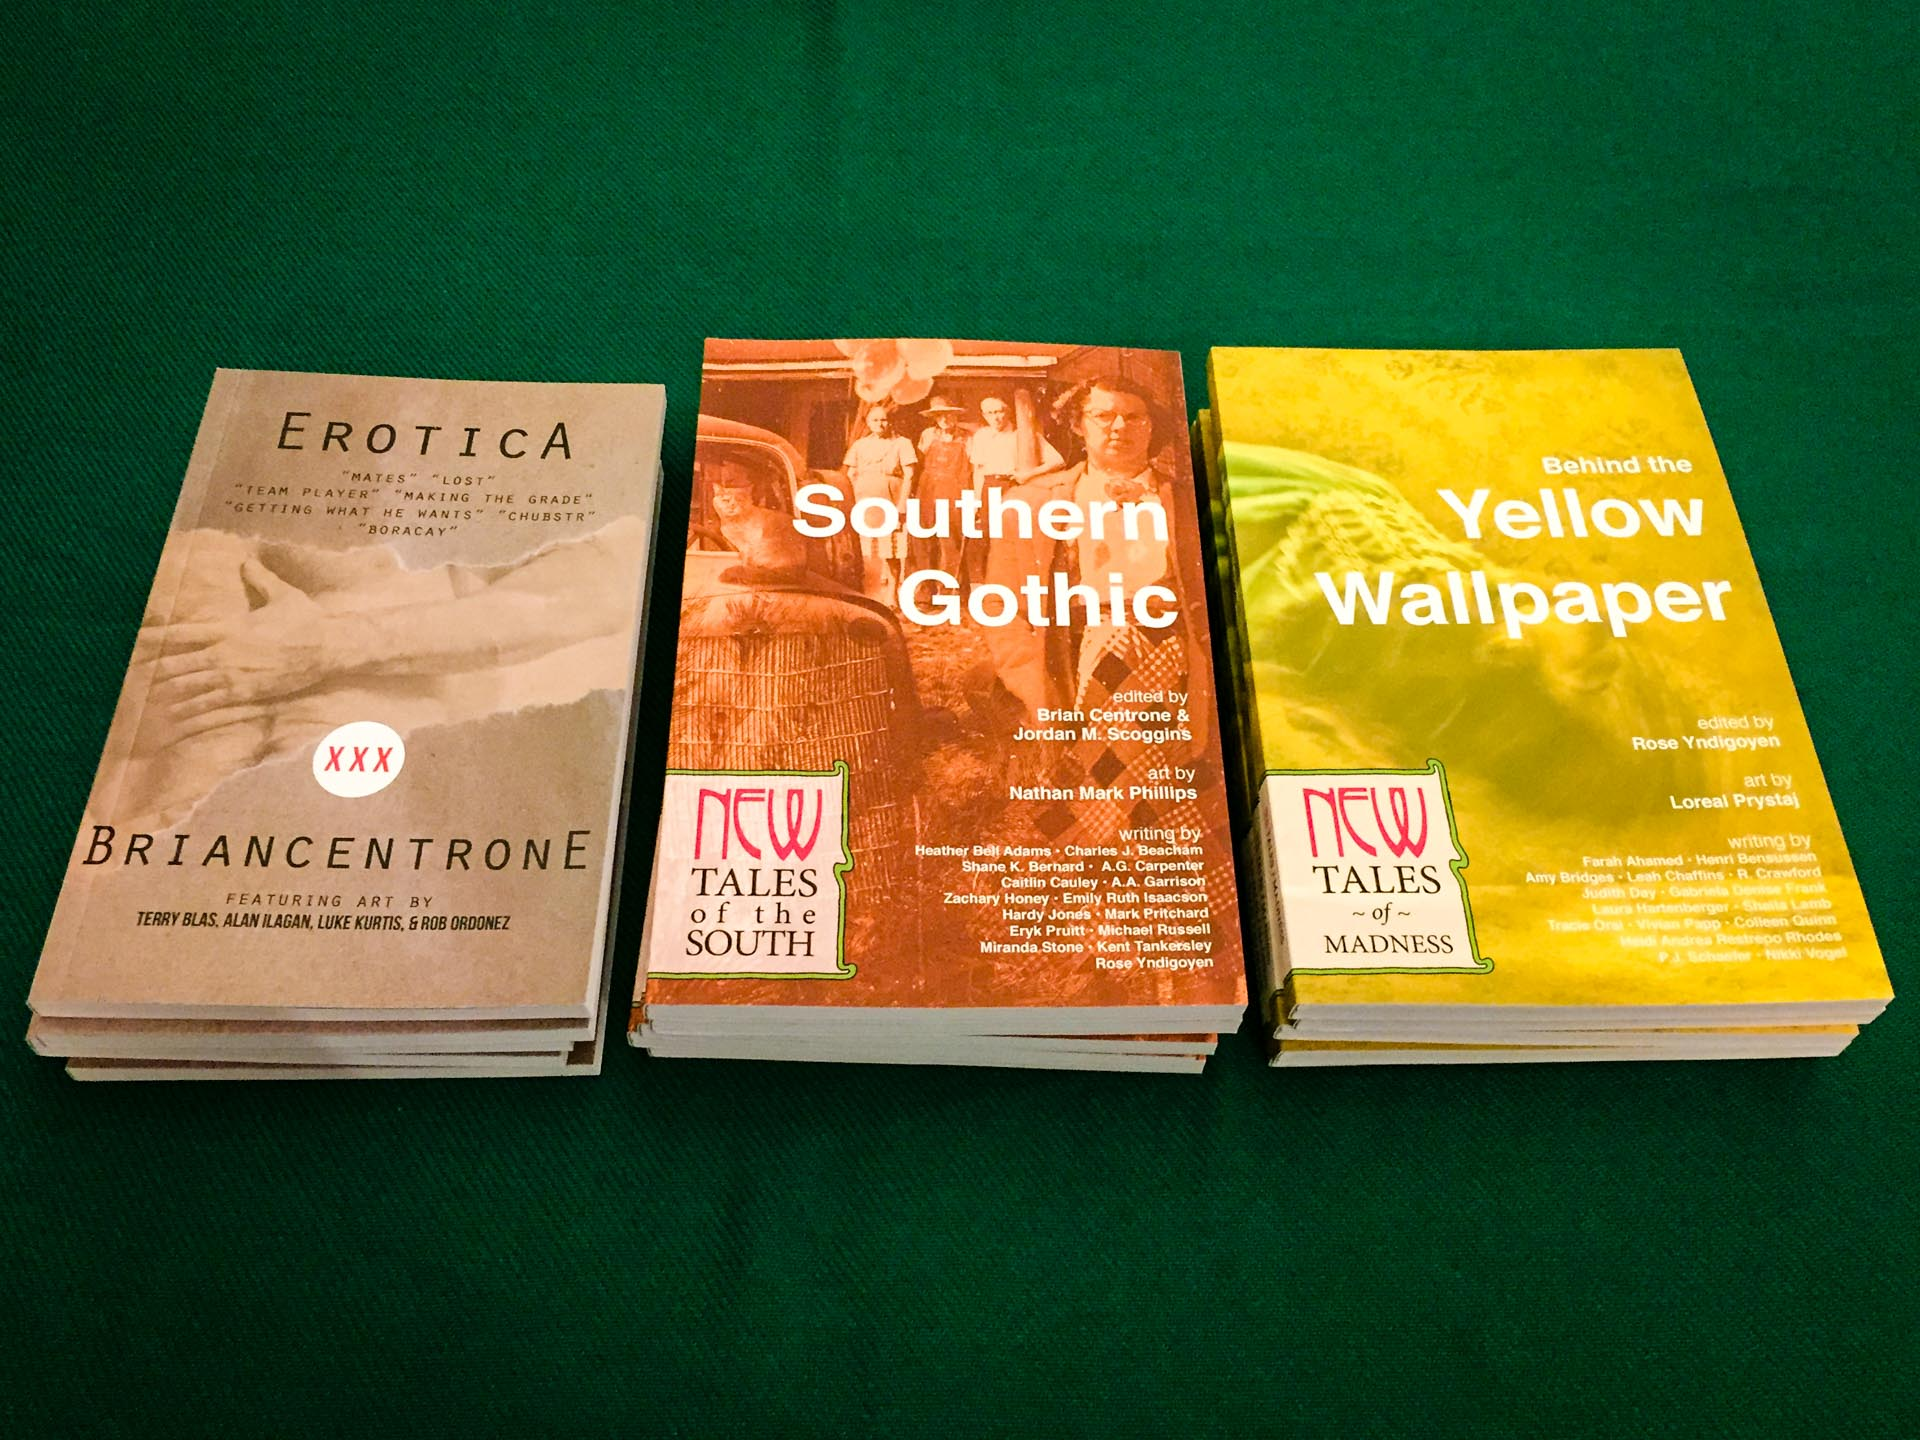 Erotica, Southern Gothic, and Behind the Yellow Wallpaper